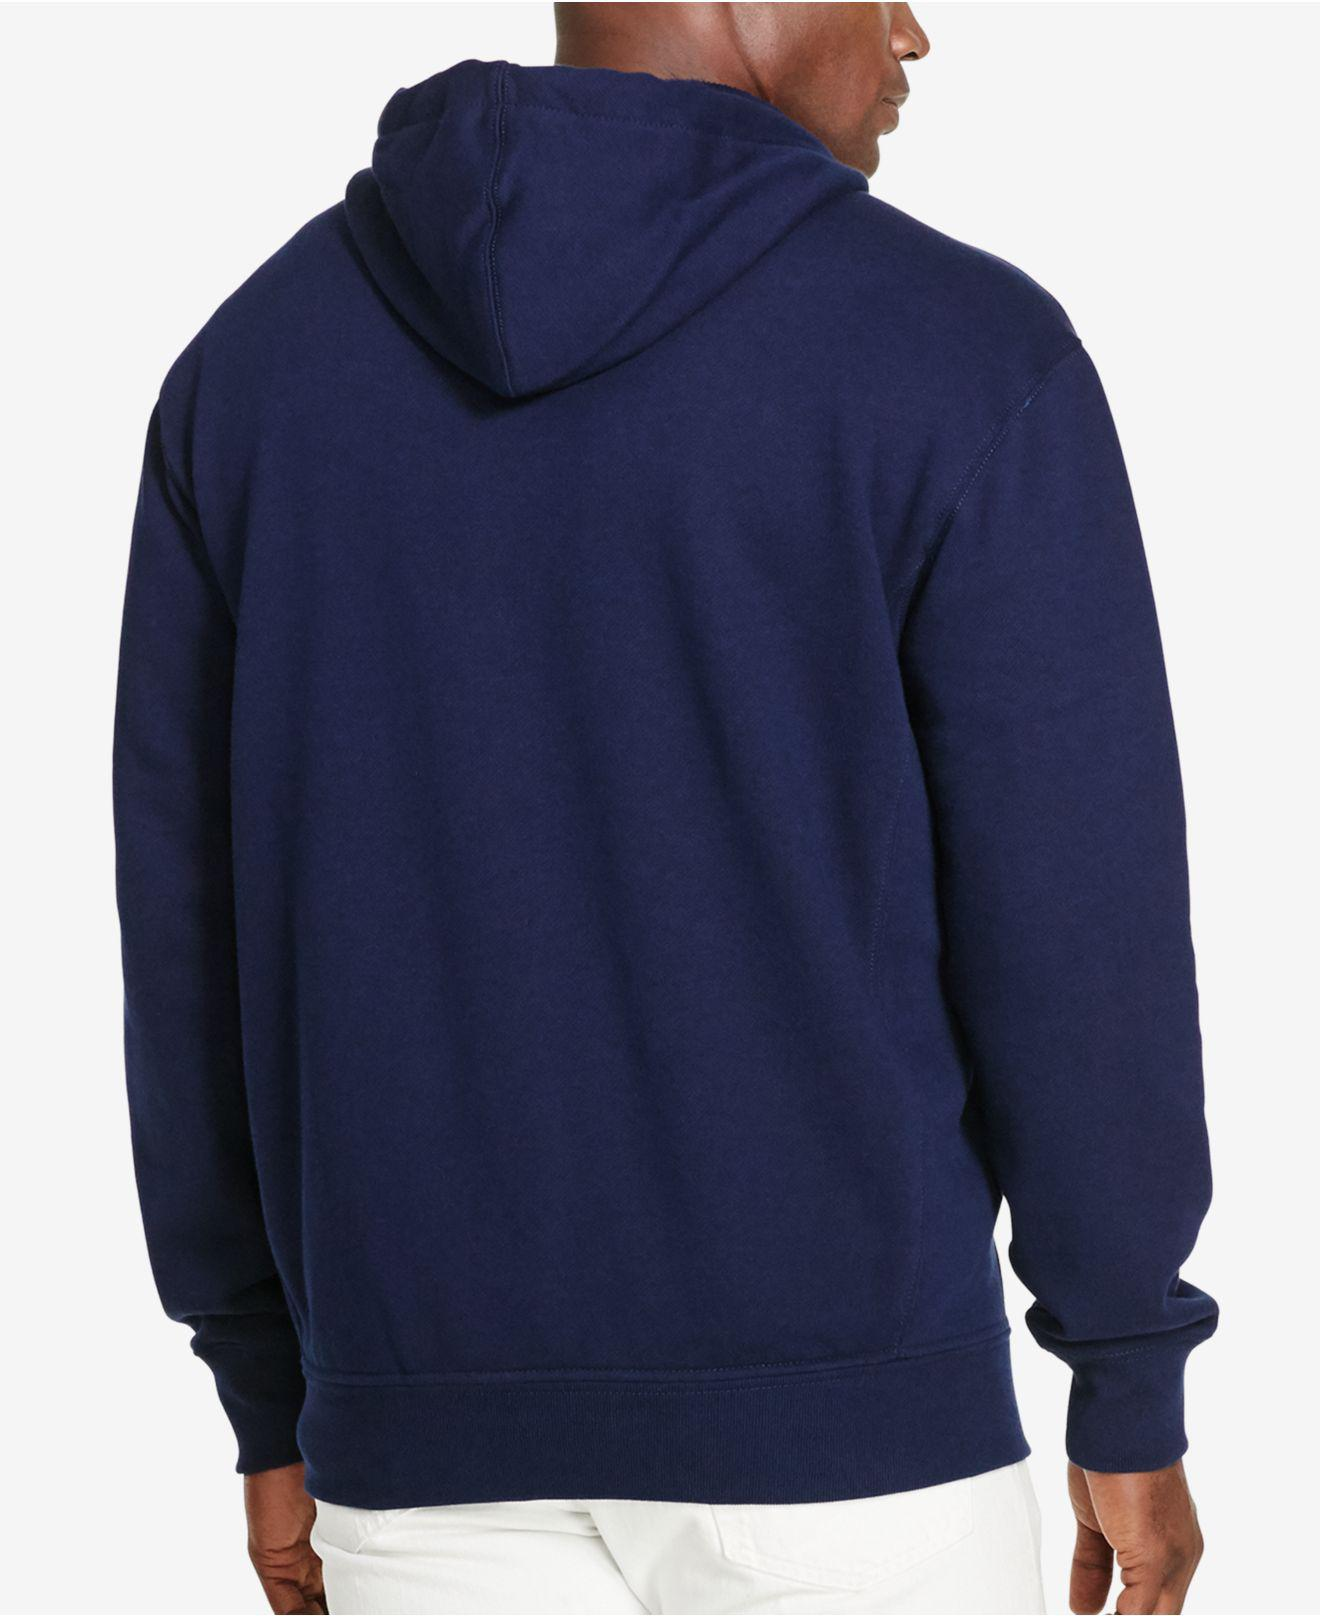 cb24f1acc2a1c5 ... czech lyst polo ralph lauren big and tall hoodie classic fleece hoodie  in blue for men